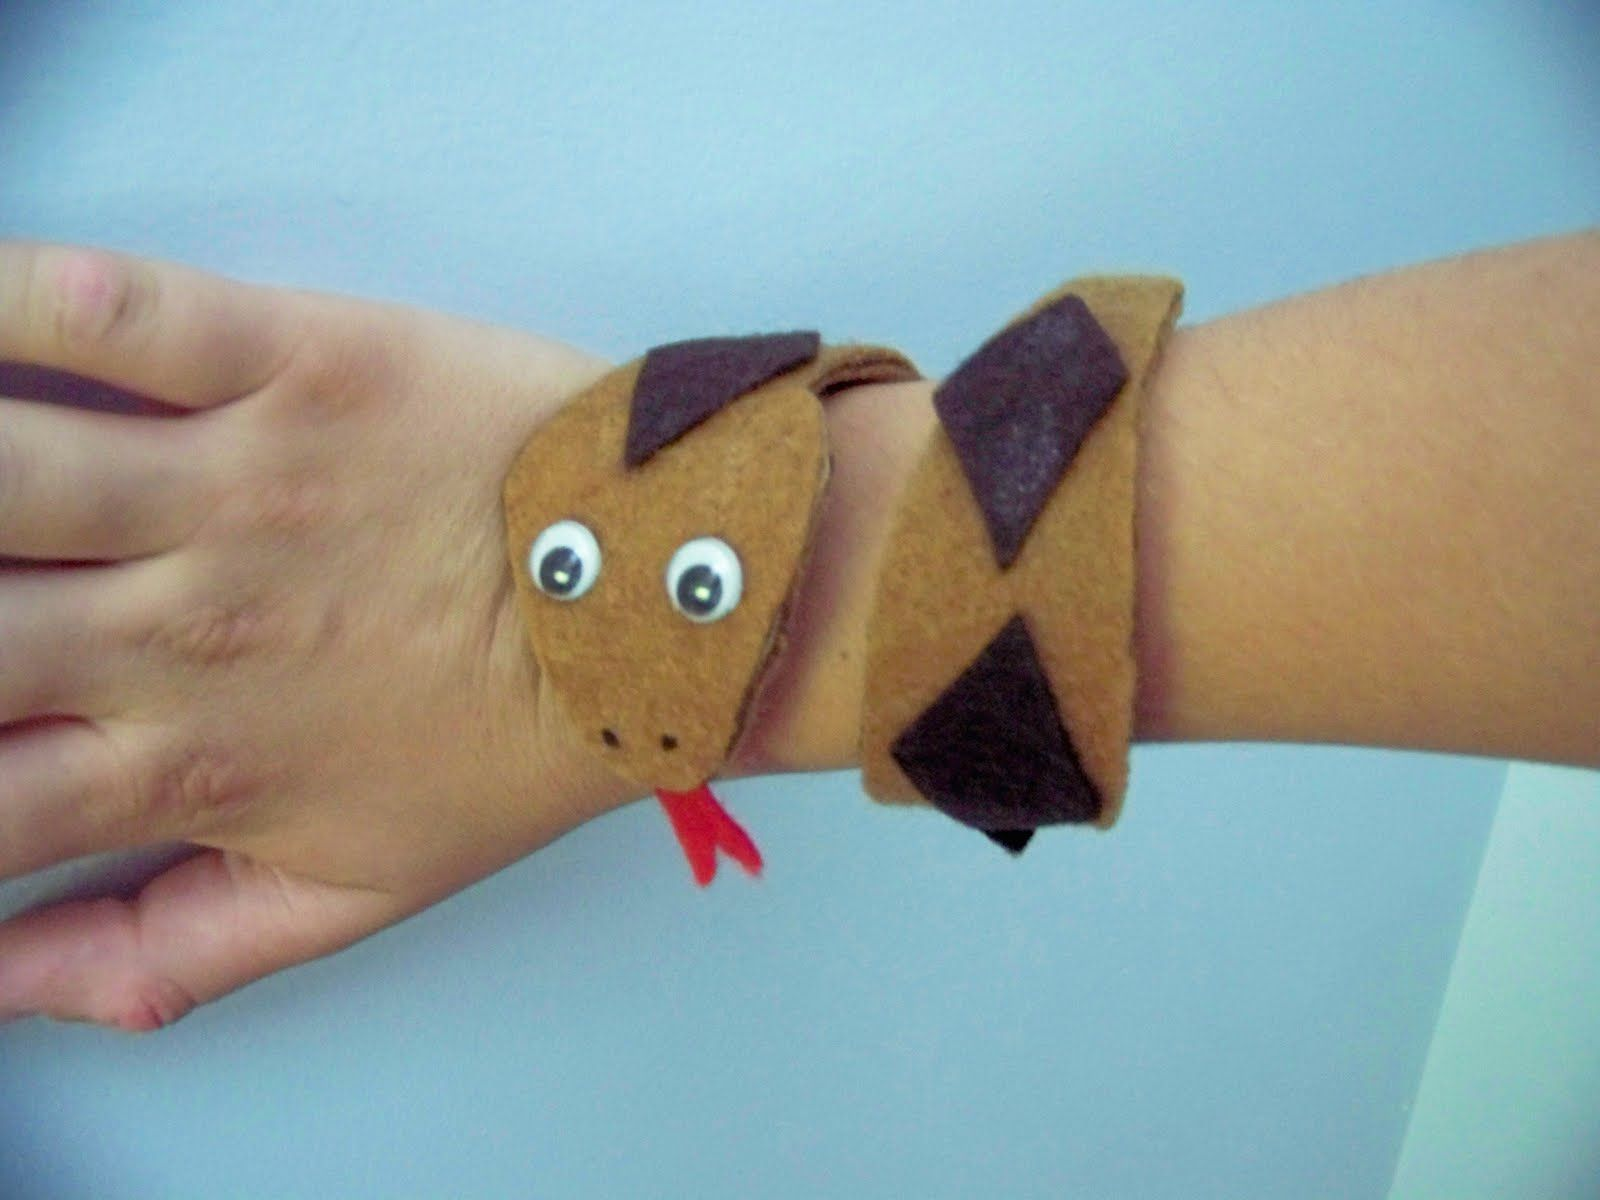 Snack Bracelet Craft From Tp Roll And Felt Includes Template And Directions